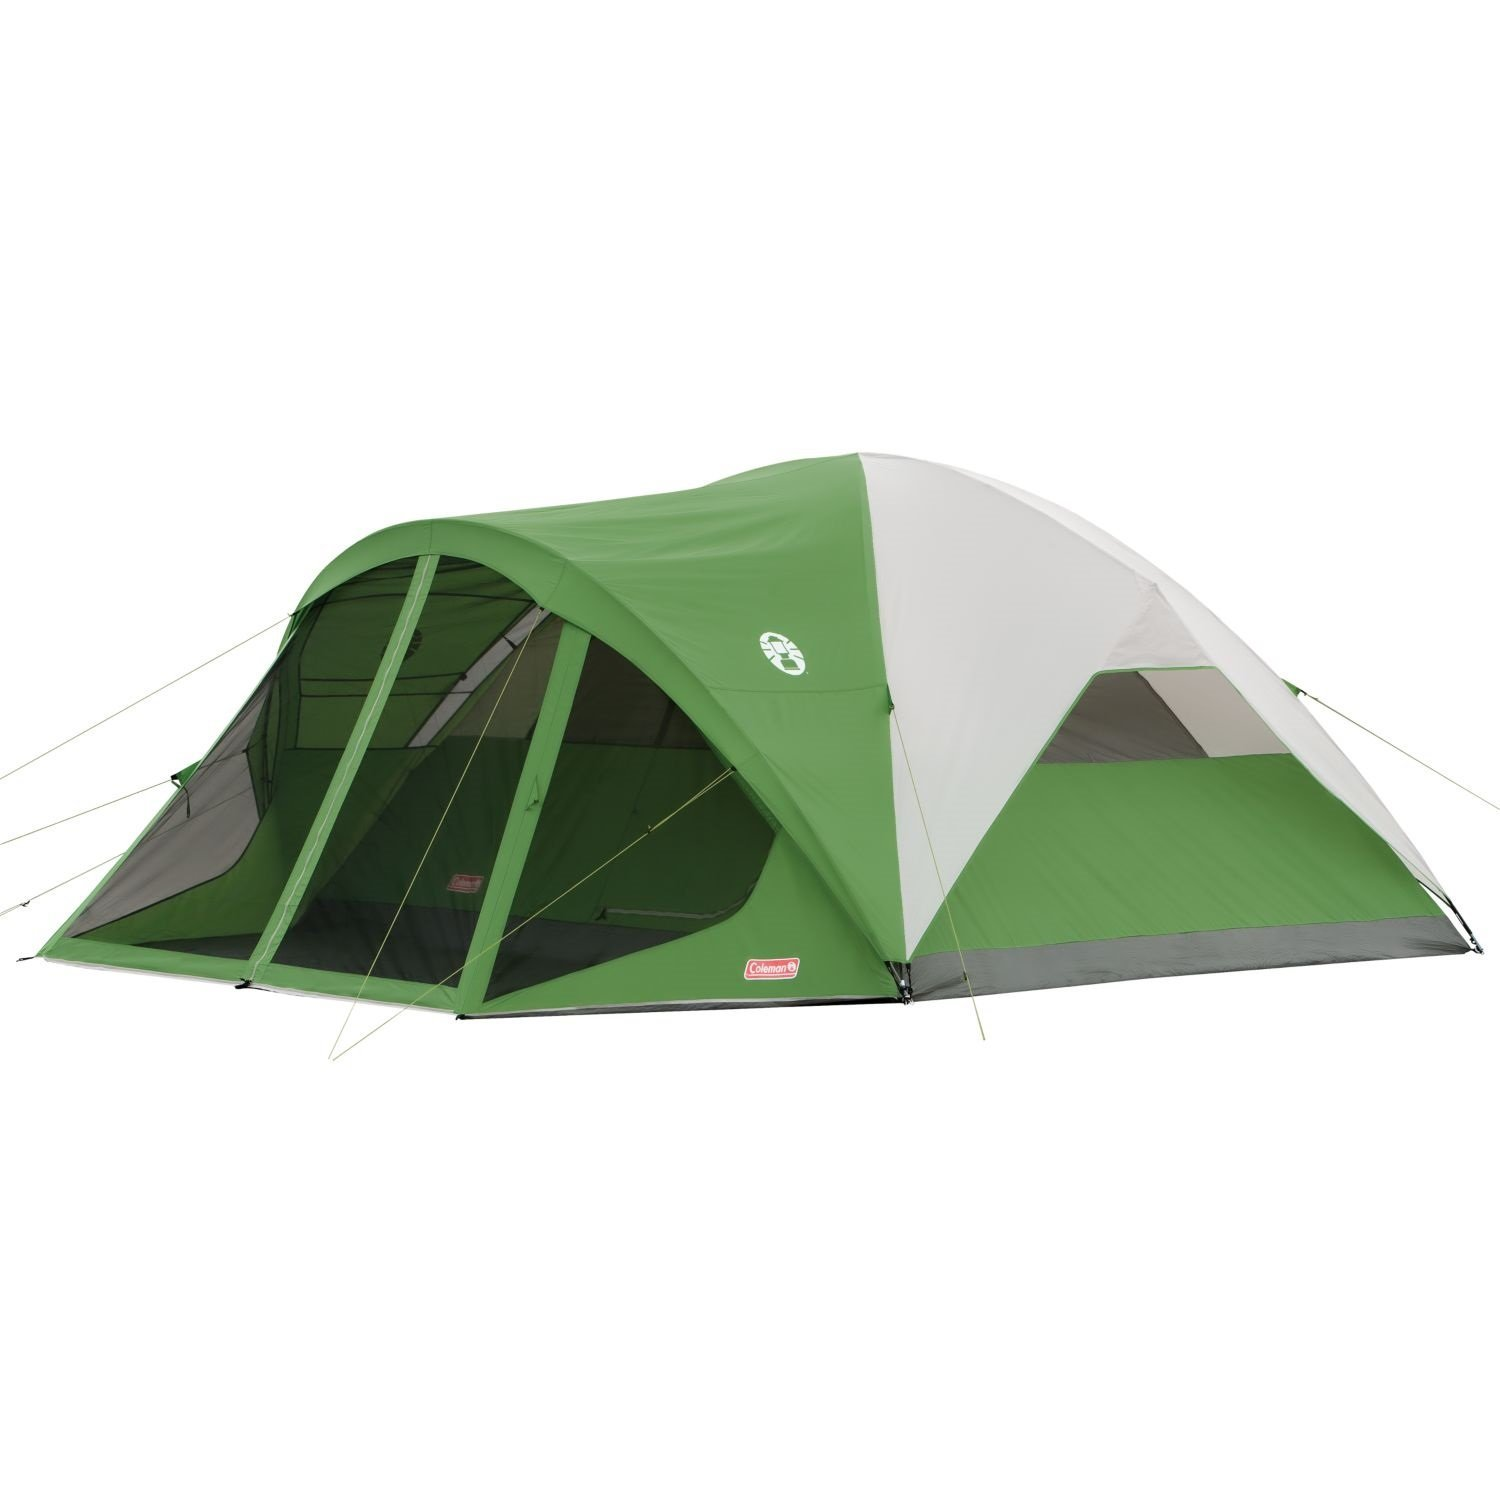 Coleman Evanston Screened Tent Review - Traveling Monarch